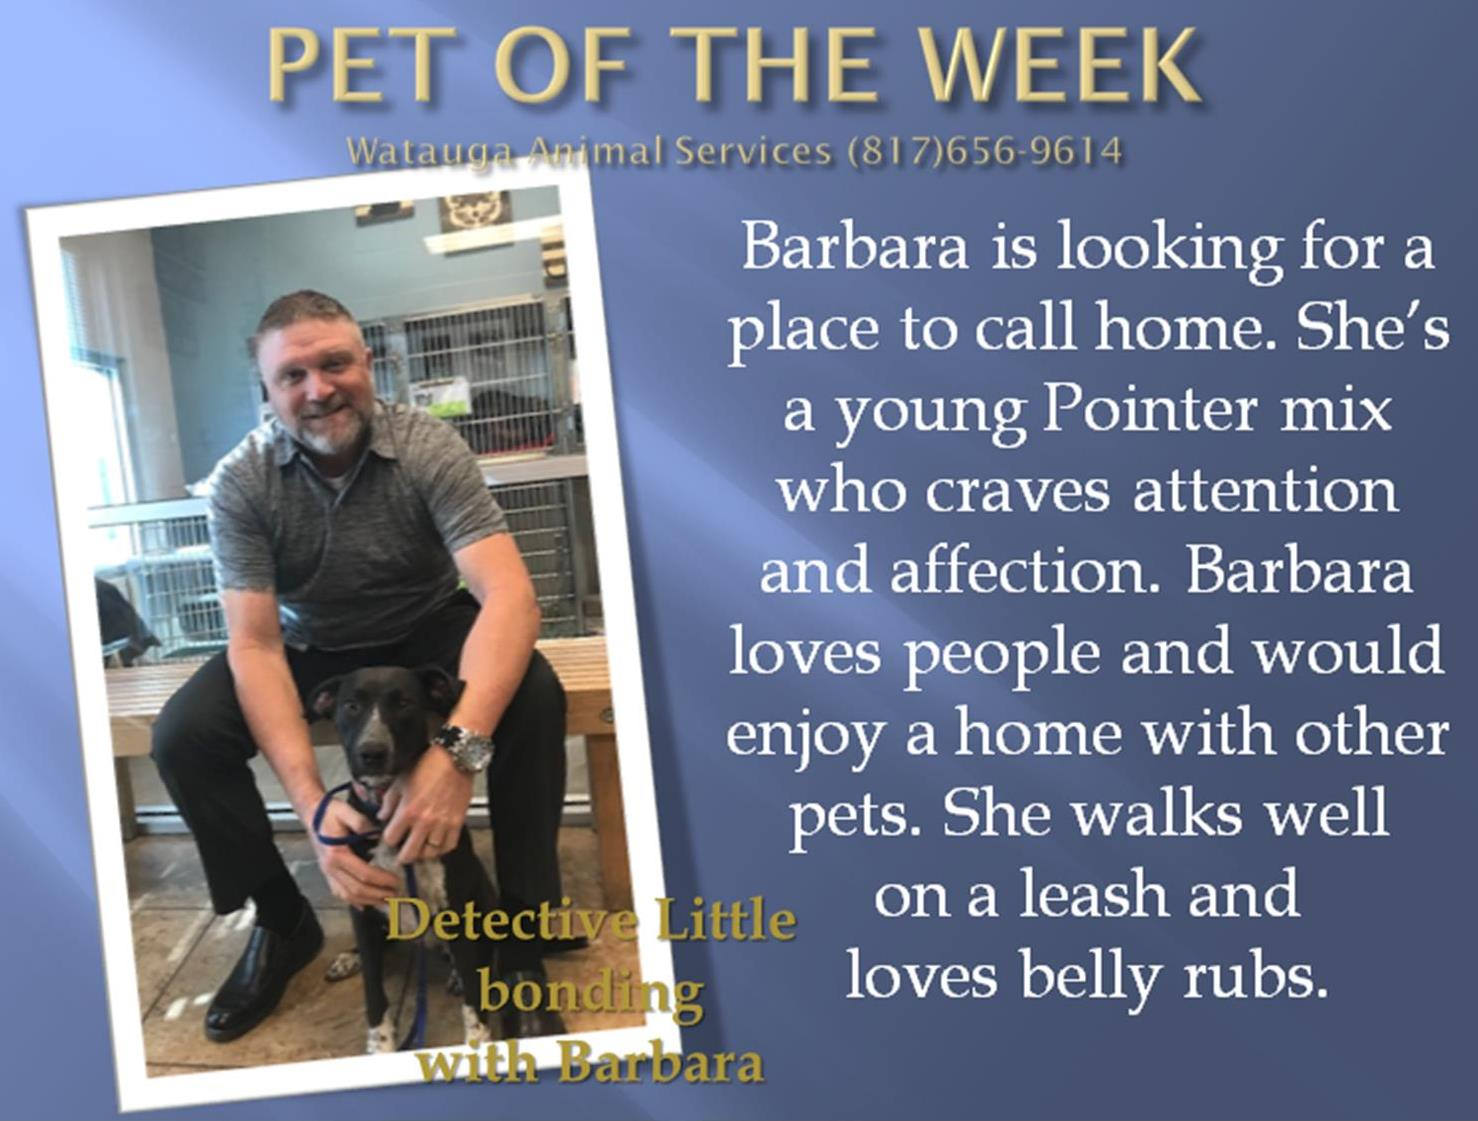 Pet of the Week - Little